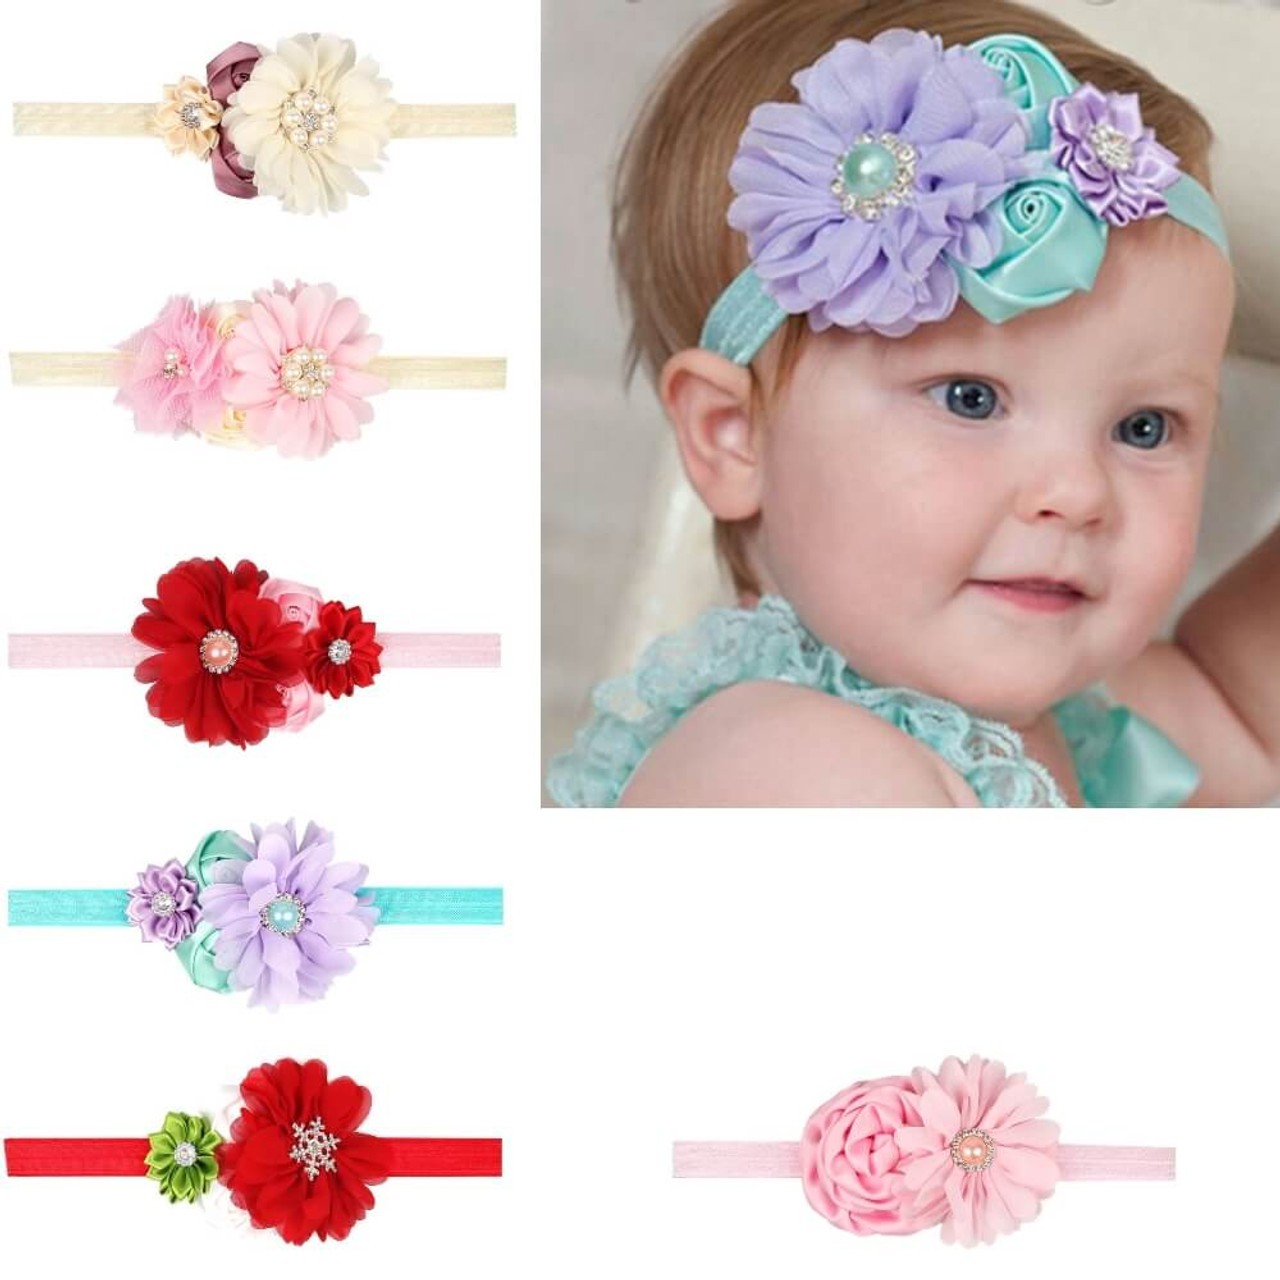 Baby 4 Flower Crown Headband Free Shipping 6 Colors